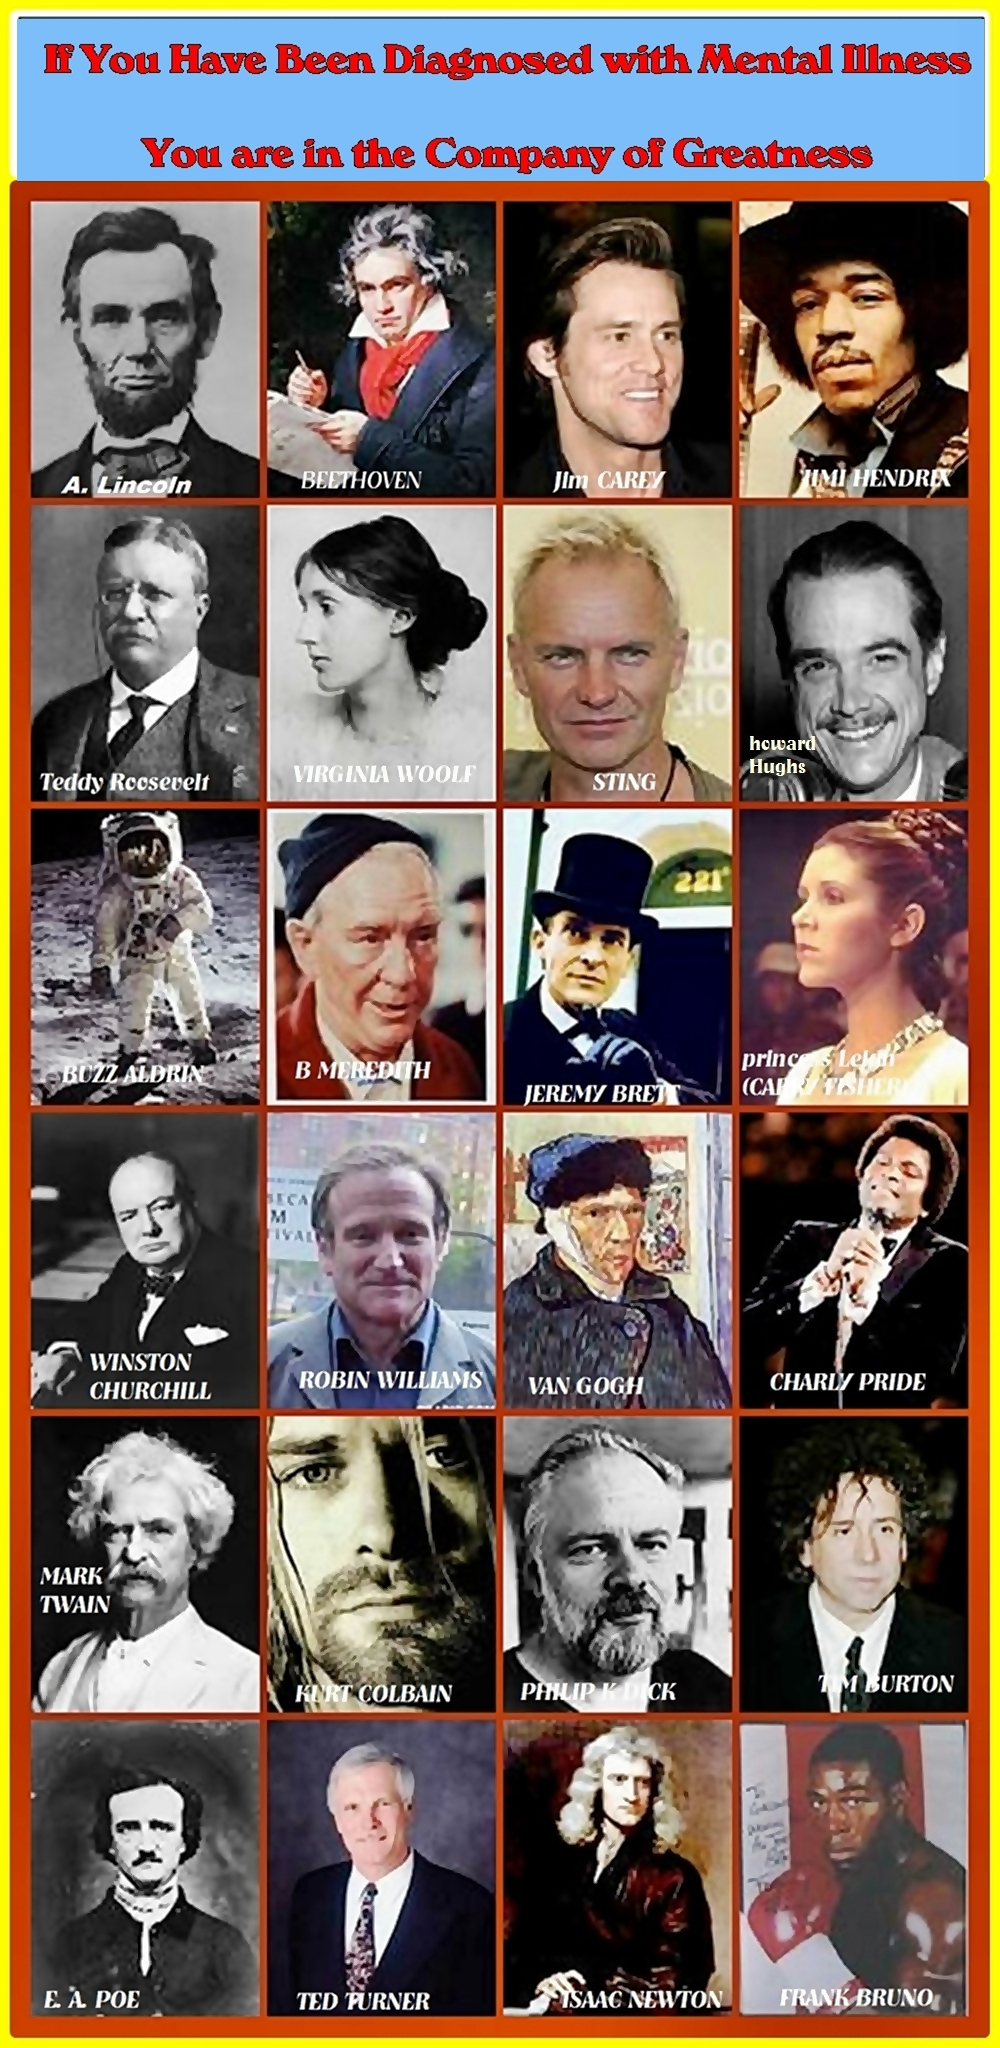 a research paper on a group of famous people with mental illnesses 300 famous people & celebrities who have suffered with mental illness, mental health or learning issues help highlight the stigma in our society below please find a list of 300 celebrities/famous people (alive and passed) who have or still suffer with mental health problems or illnesses or learning disorders.